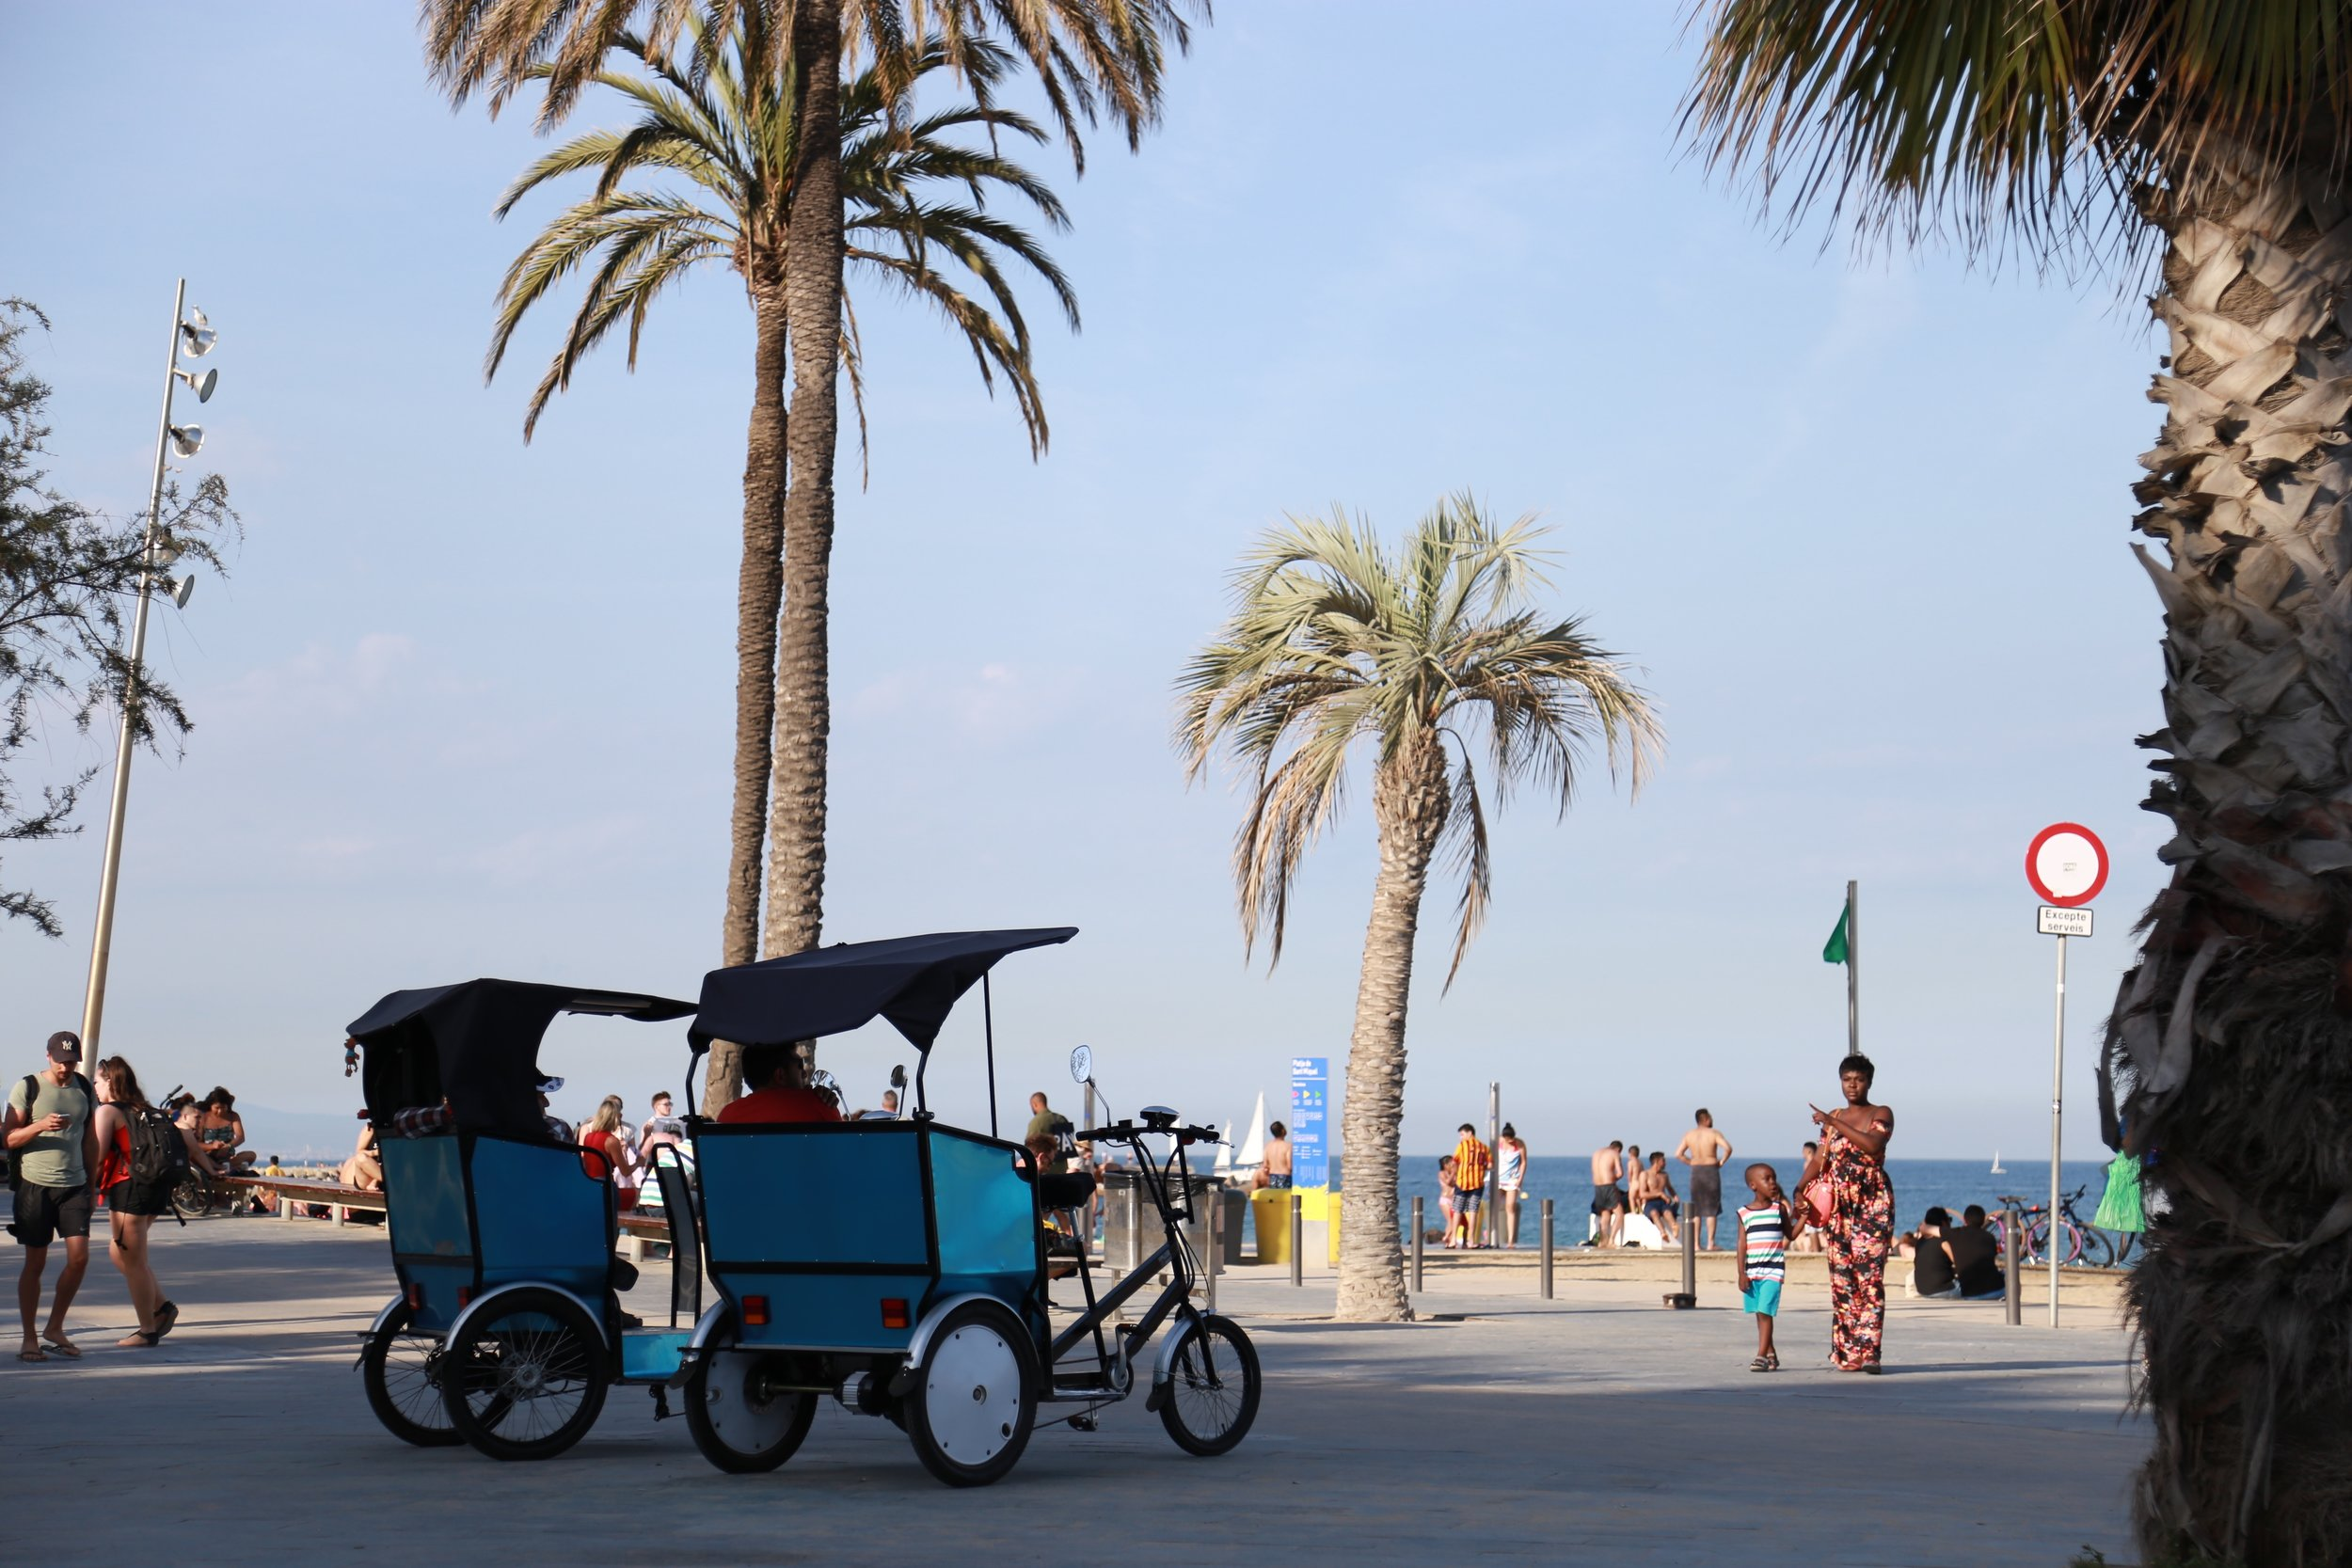 Pedicabs are one way to get around Barcelona, but not the cheapest option.